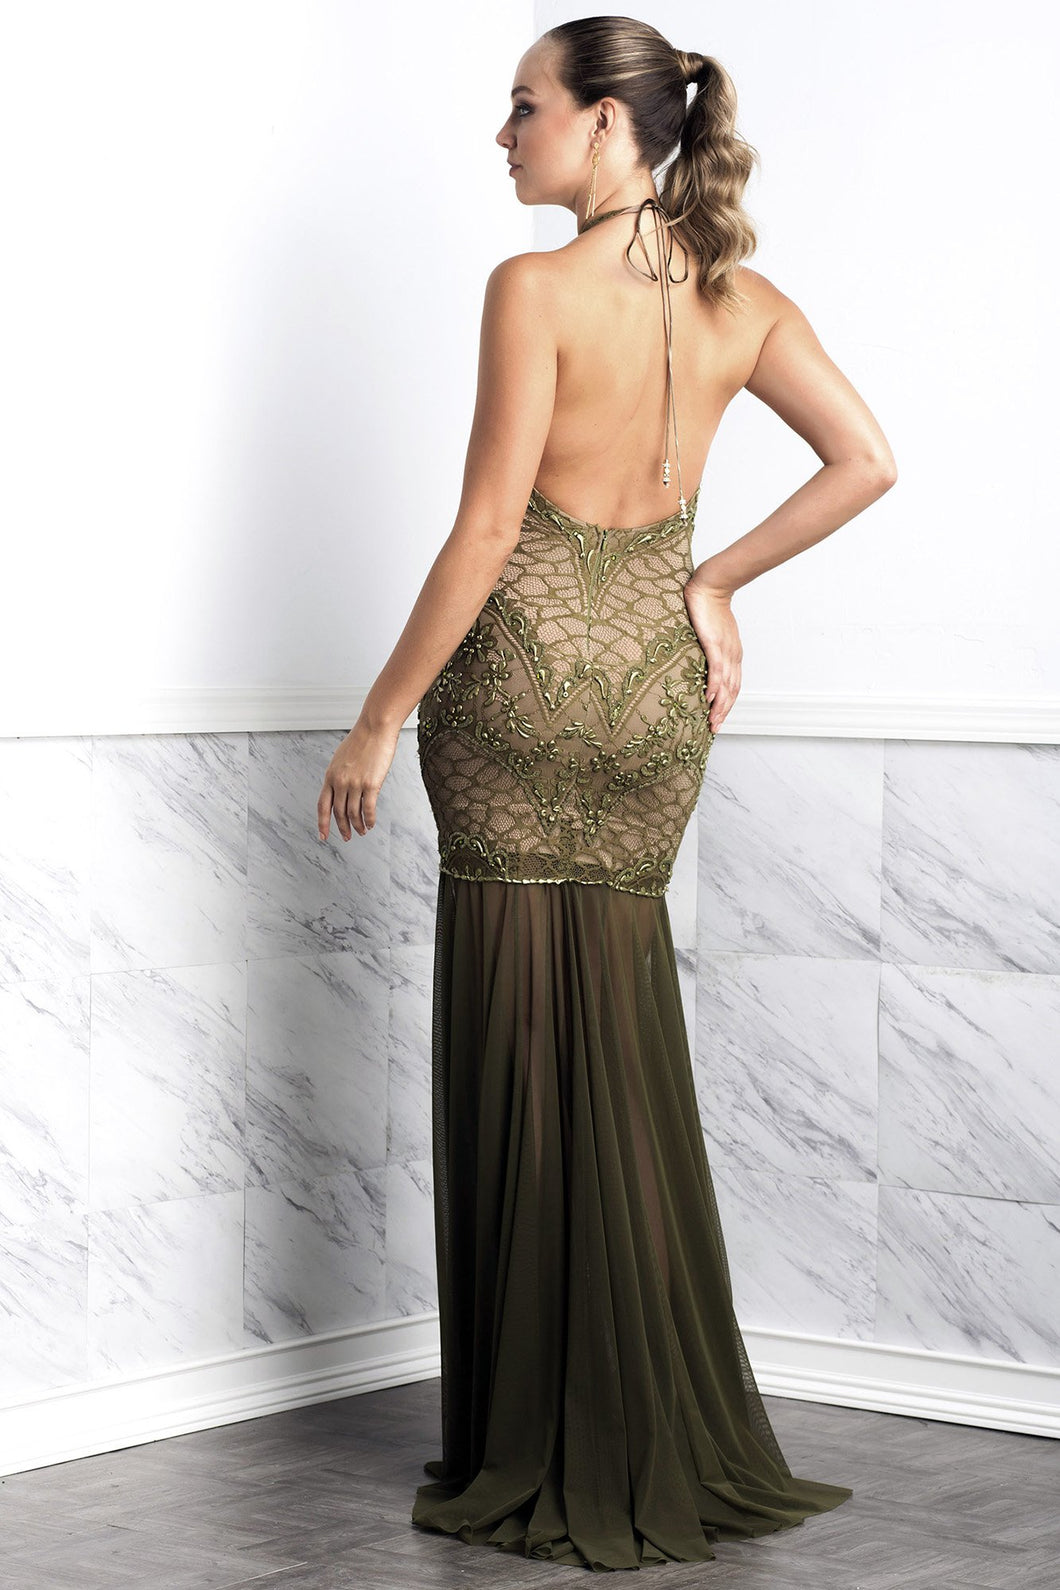 Victoria Green Long Dress - Gowns - BACCIO Couture